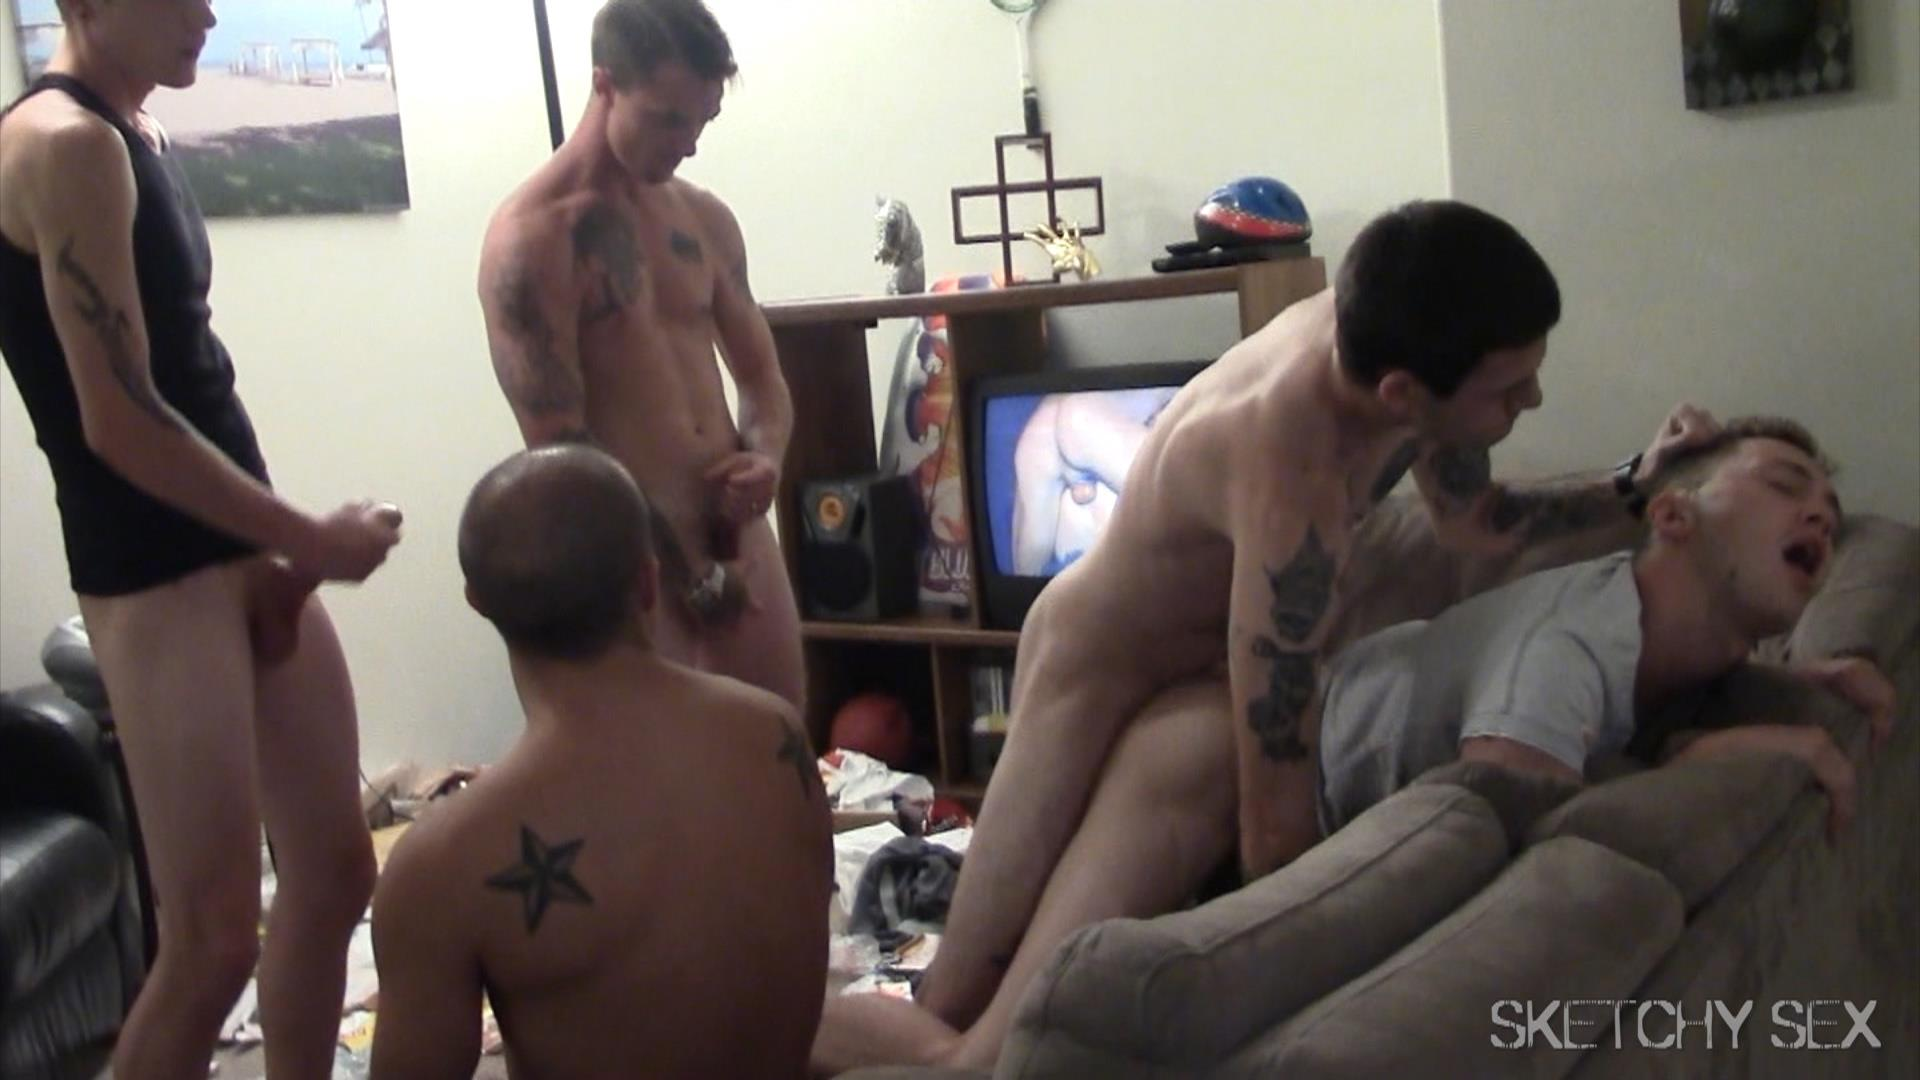 Sketchy-Sex-Bareback-Breeding-Party-Amateur-Gay-Porn-16 Hosting An Anonymous Bareback Breeding Party